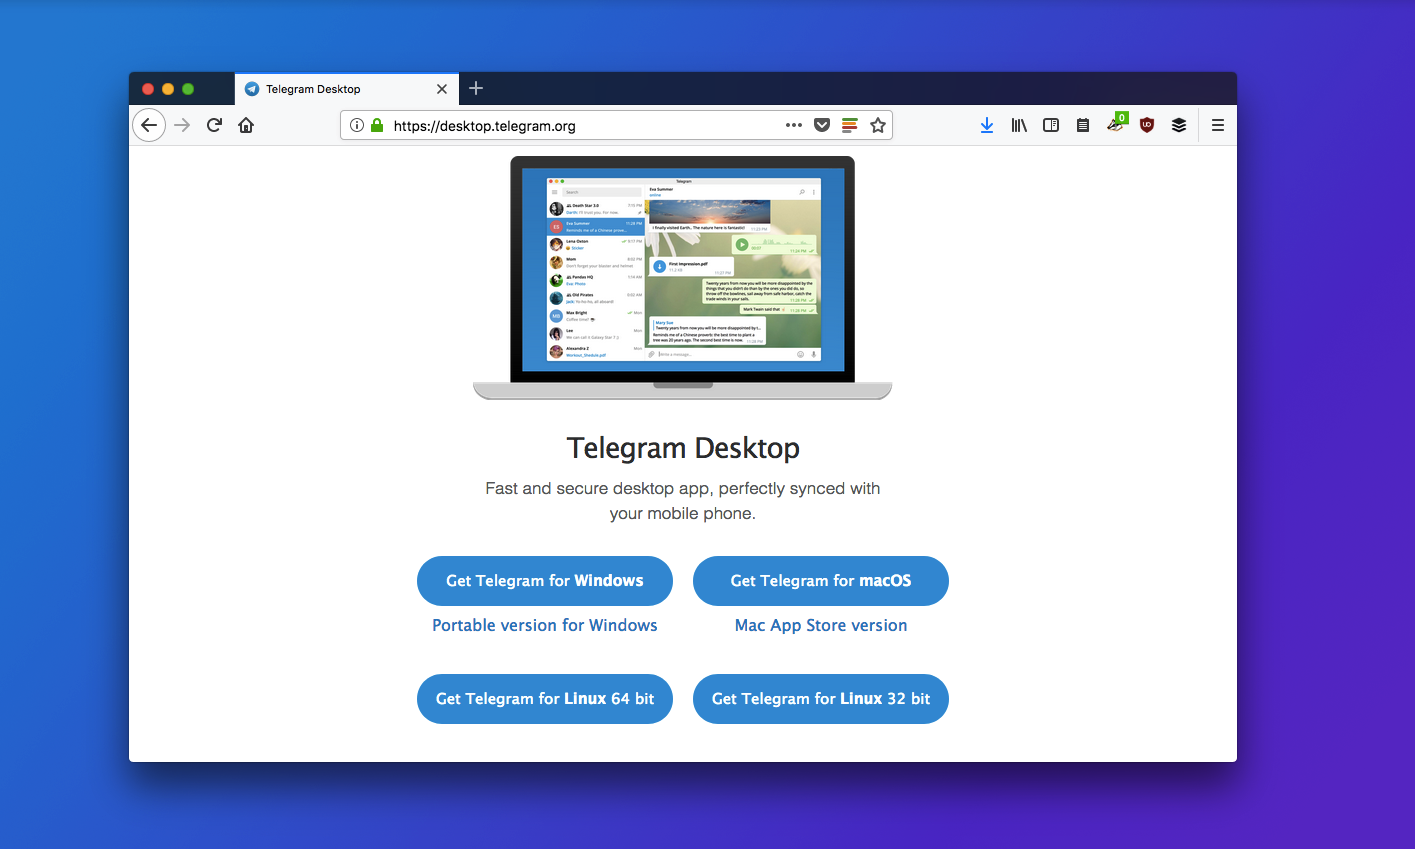 Download Telegram for desktop Mac app store, Linux, Coding